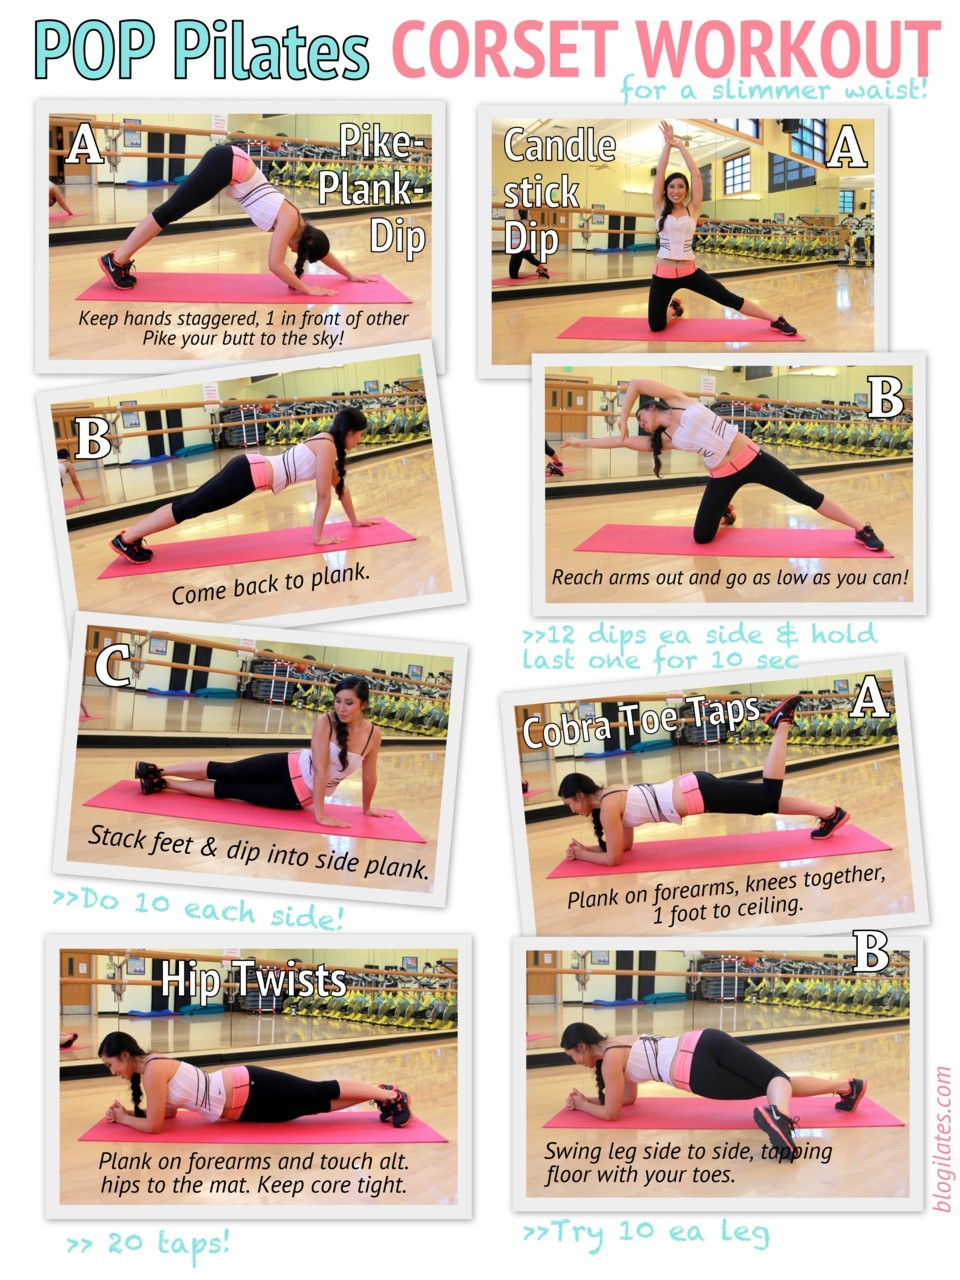 CORSET WORKOUT PRINTABLE! Try this workout 4 times total! Go for it, should be fun! To print just click on the photo and save it. Then print from your computer. To follow along, check out my YouTube video here!  <3 Cassey